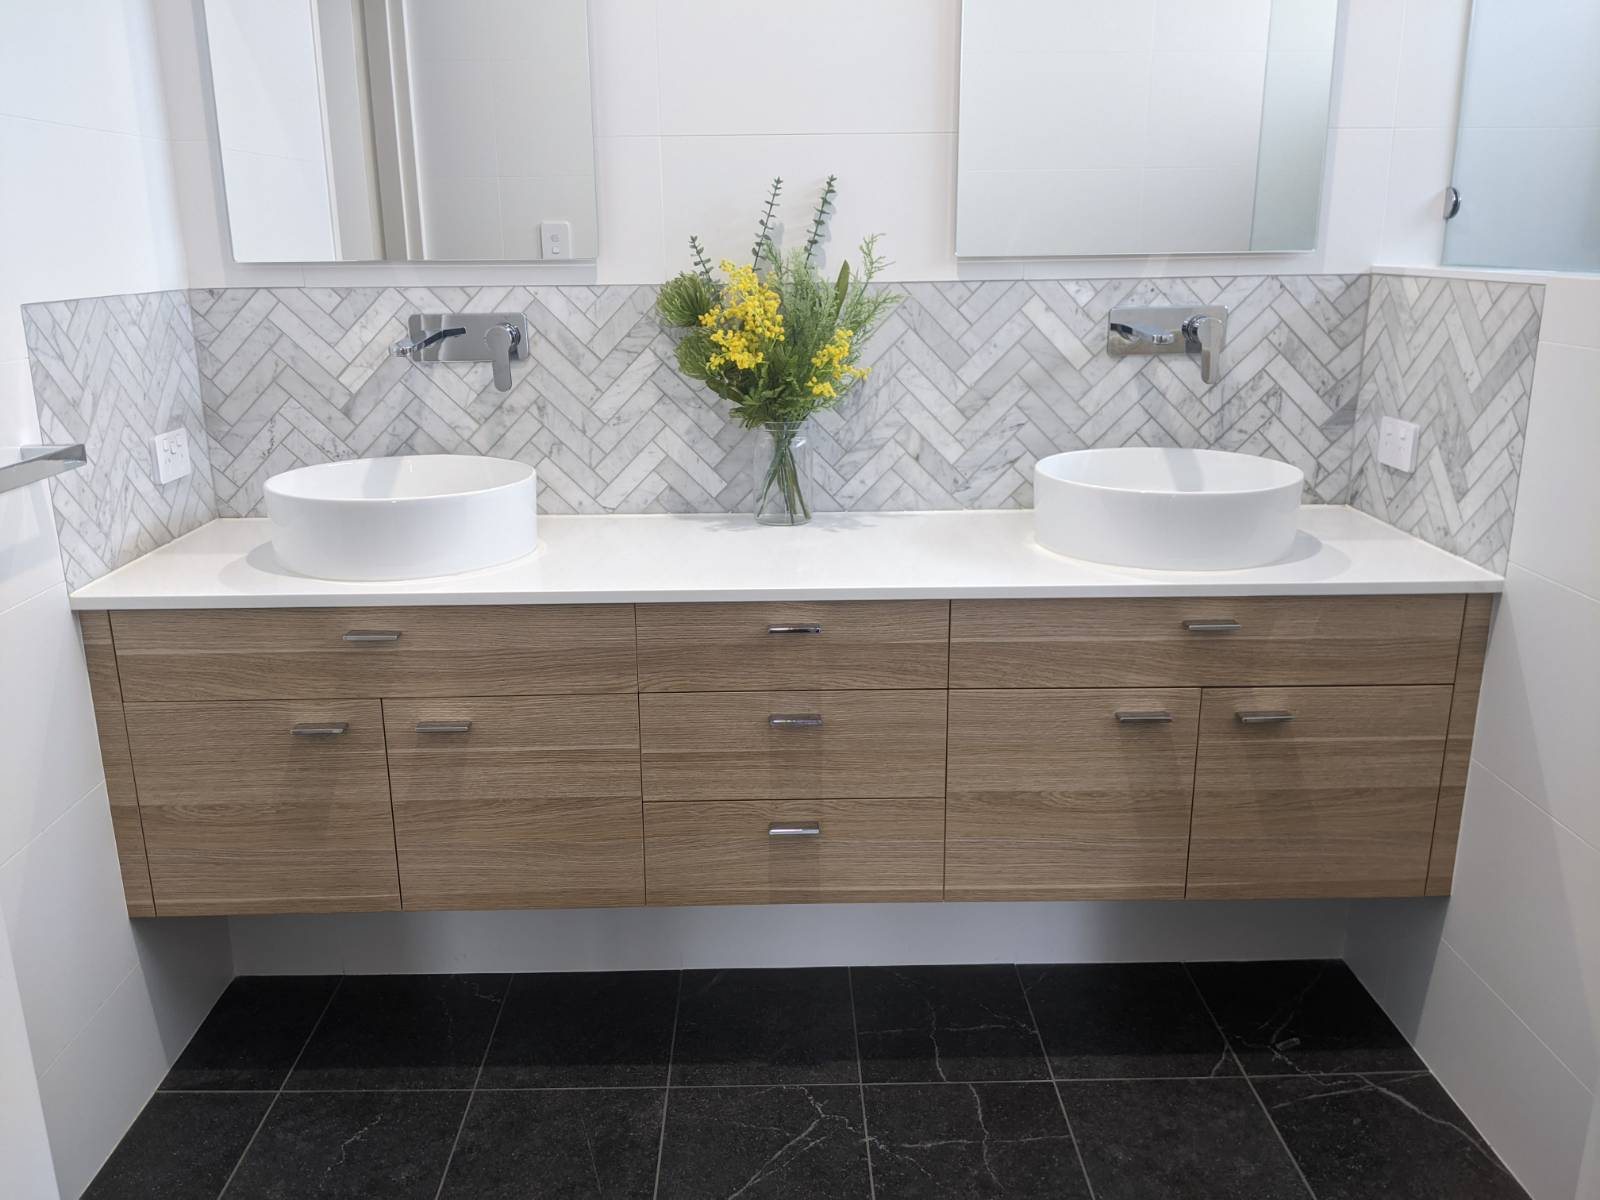 I'm short! Vanity height for a over the counter basin?